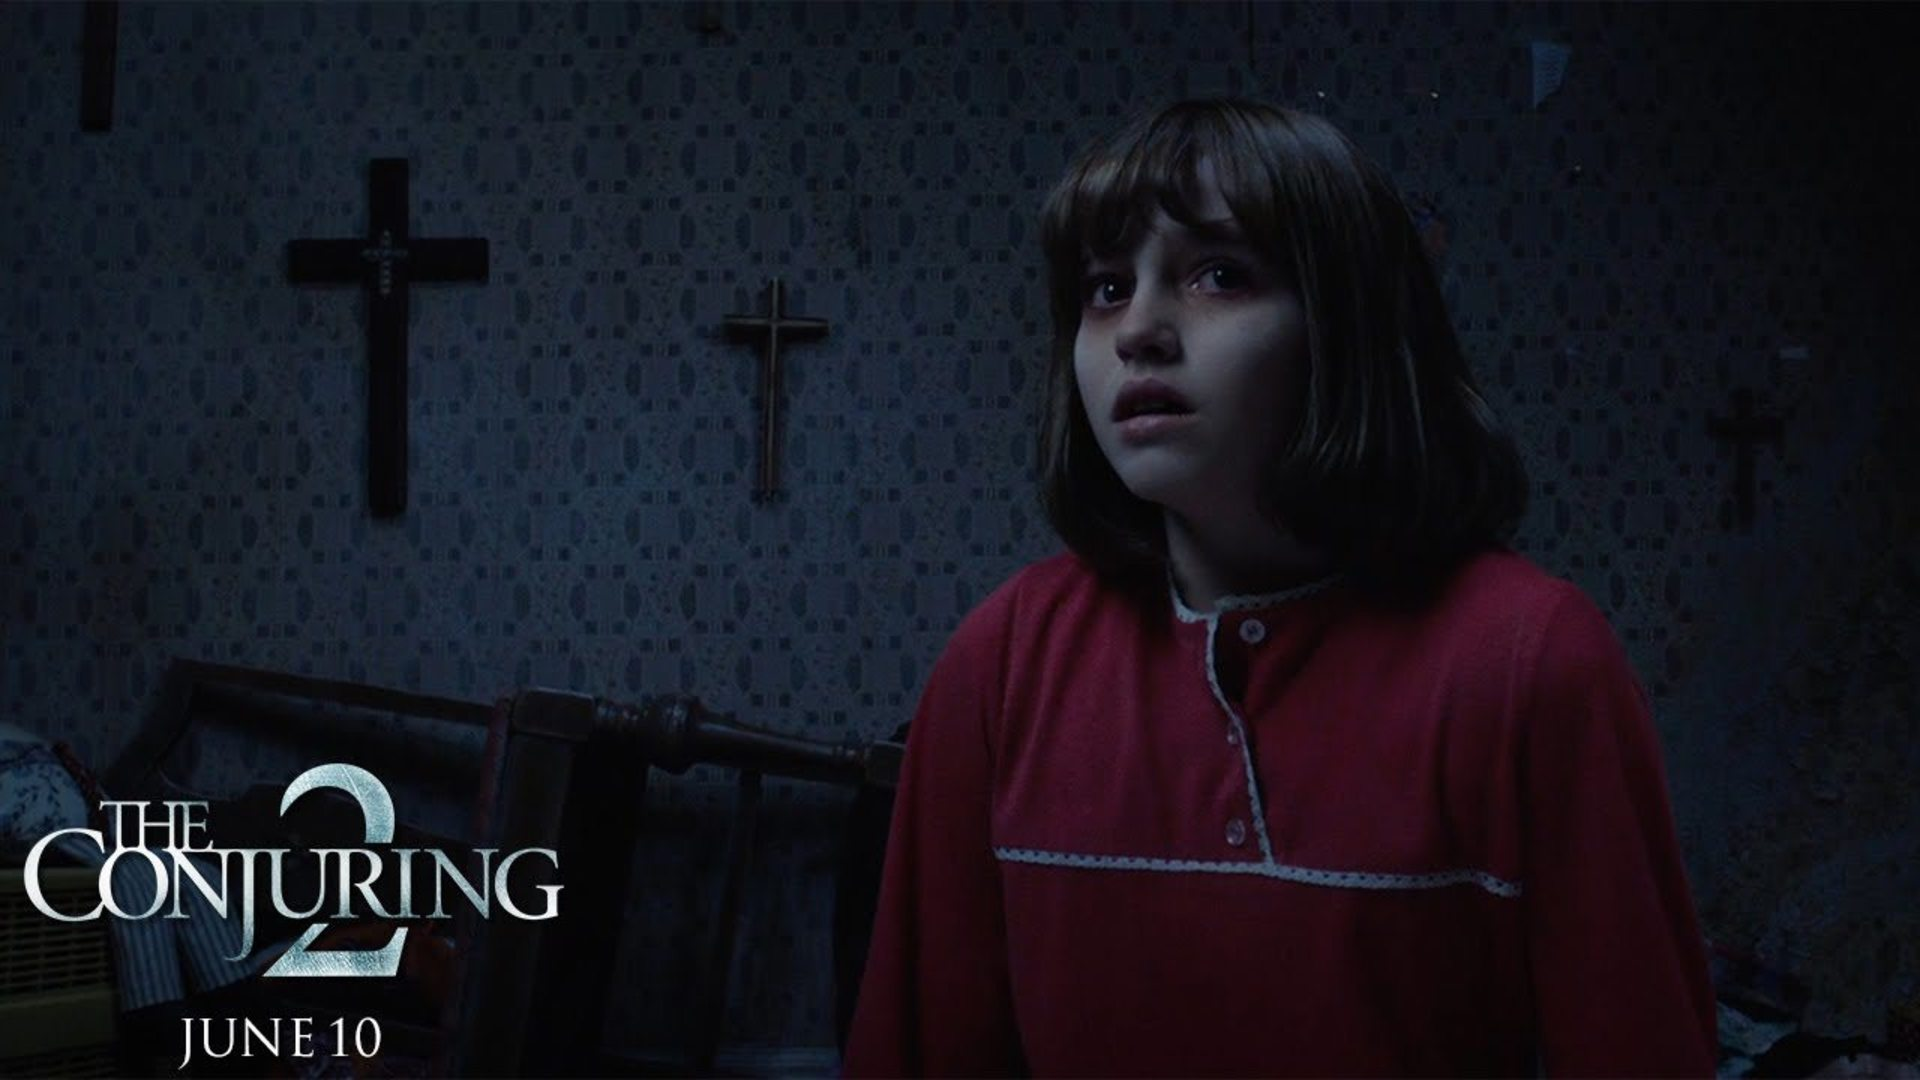 The Conjuring 2 Background